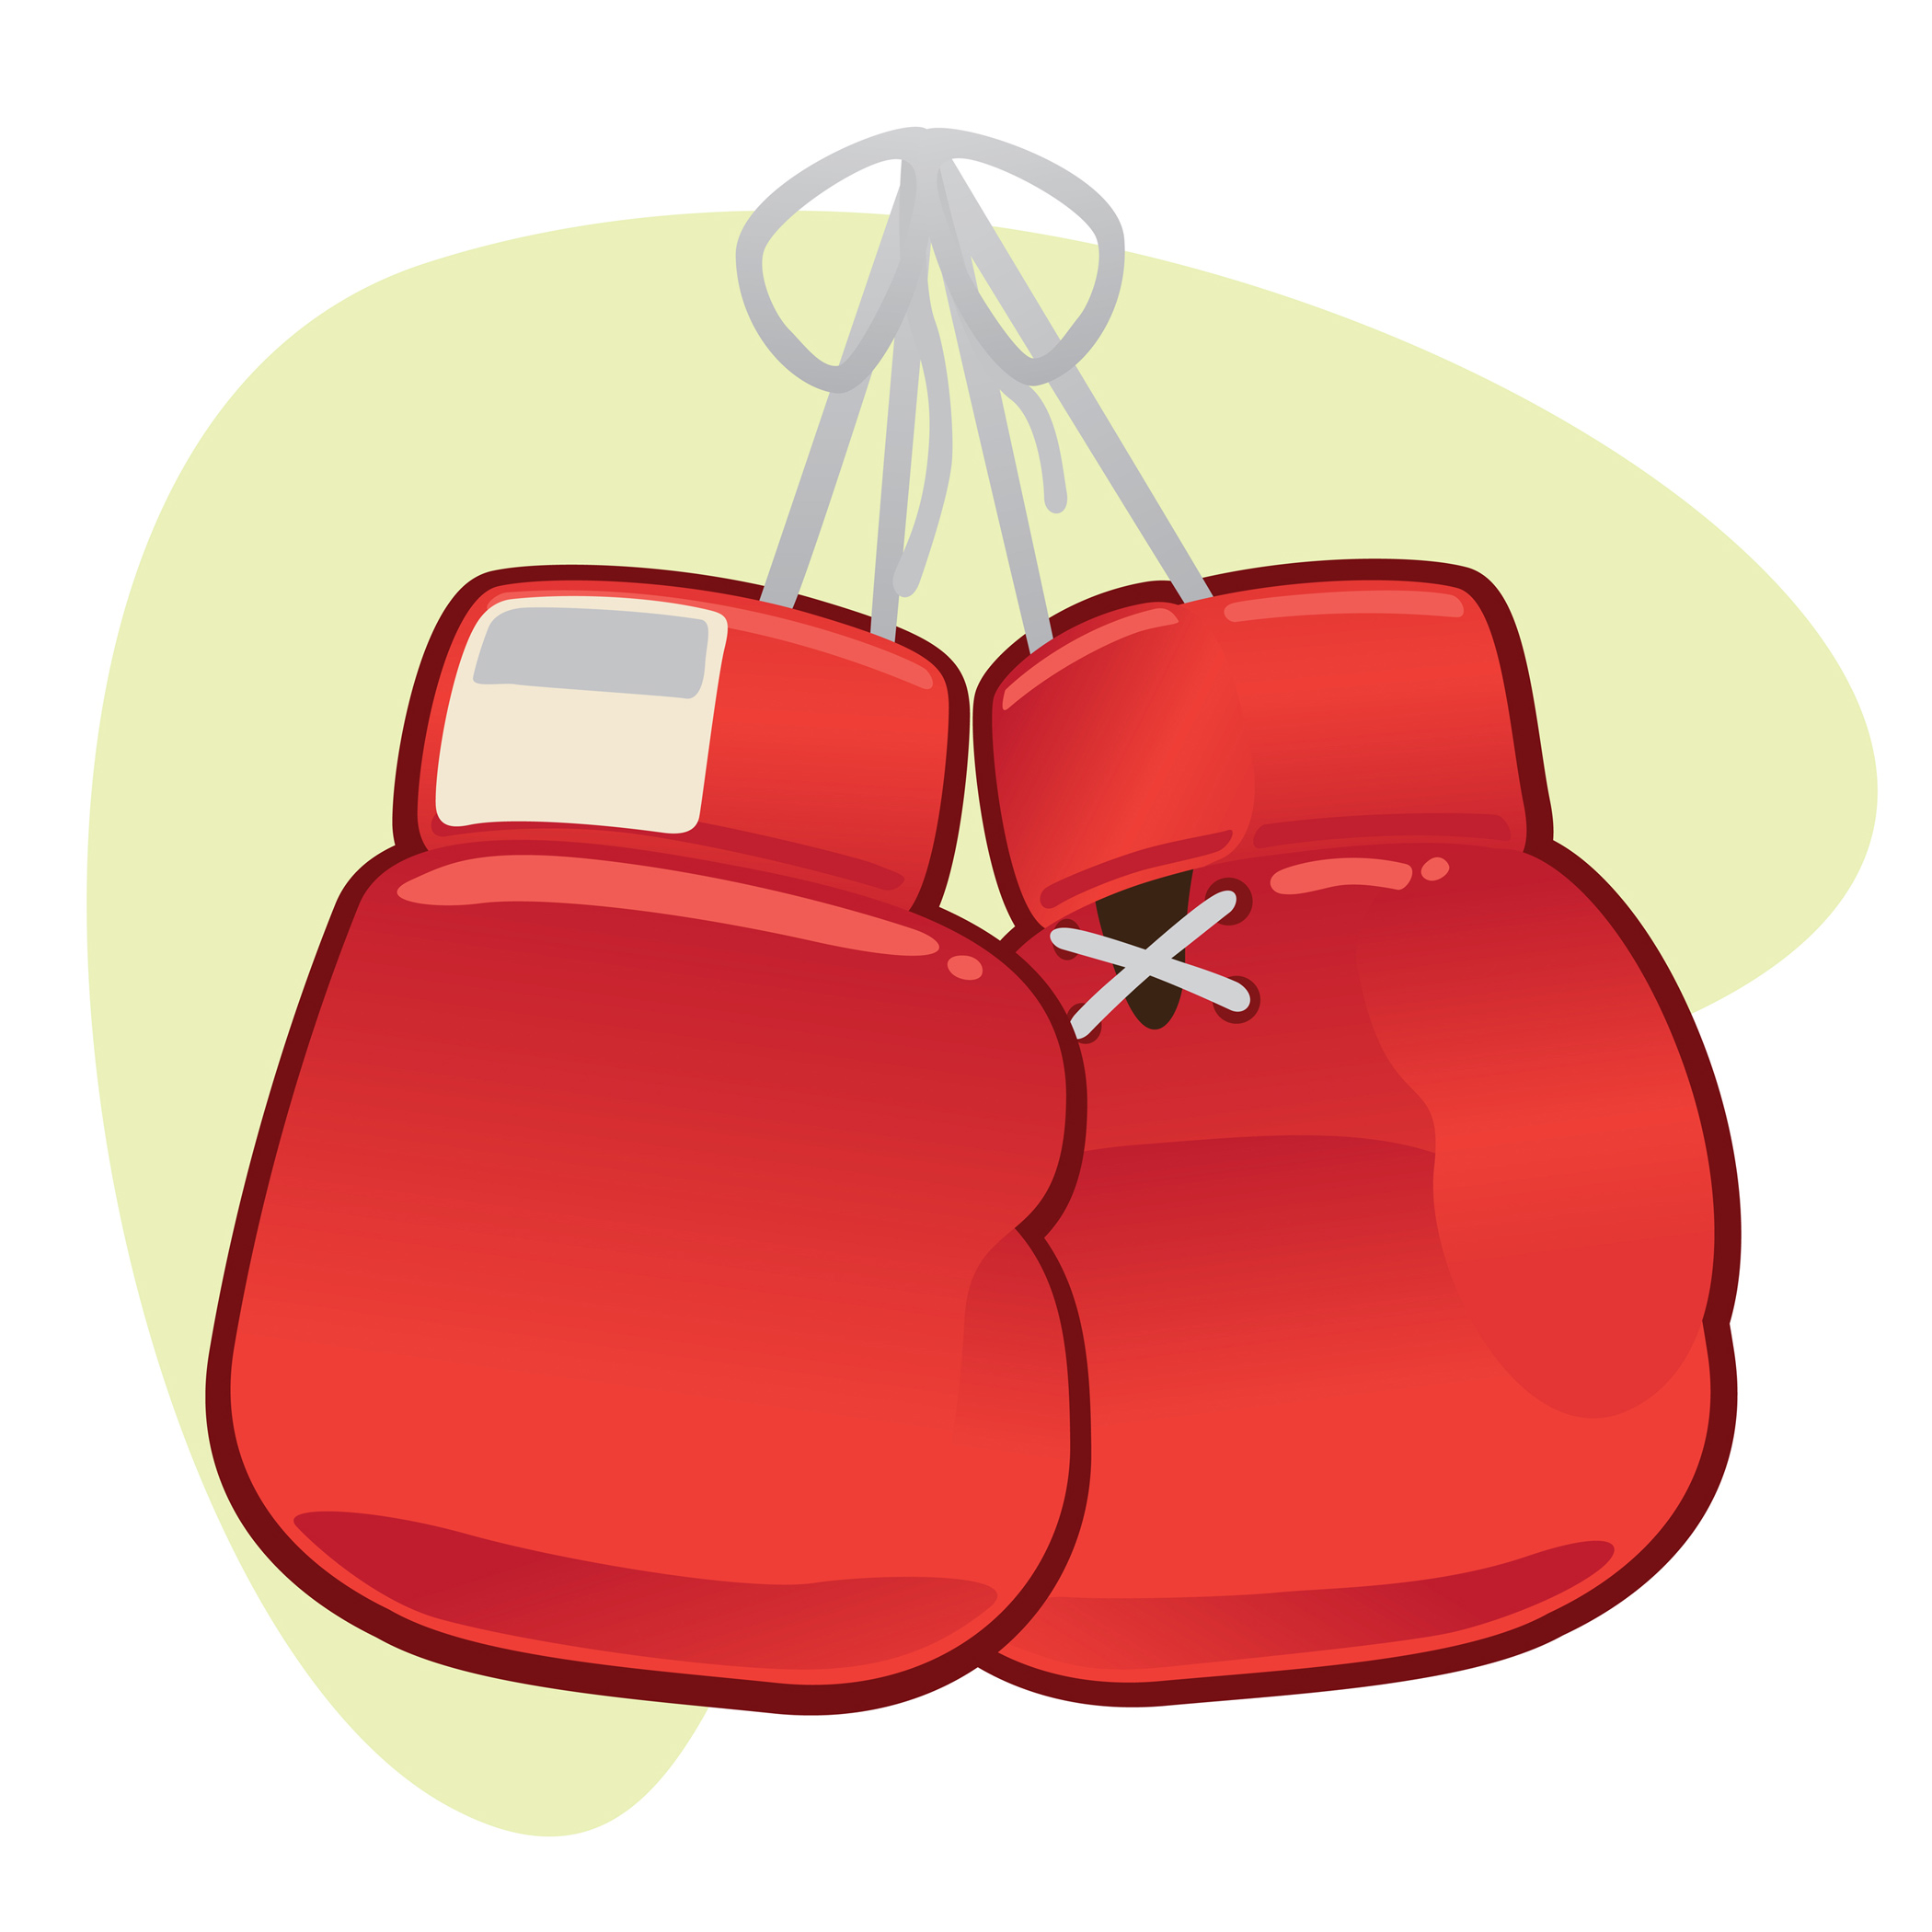 11 Boxing Vector Art Images